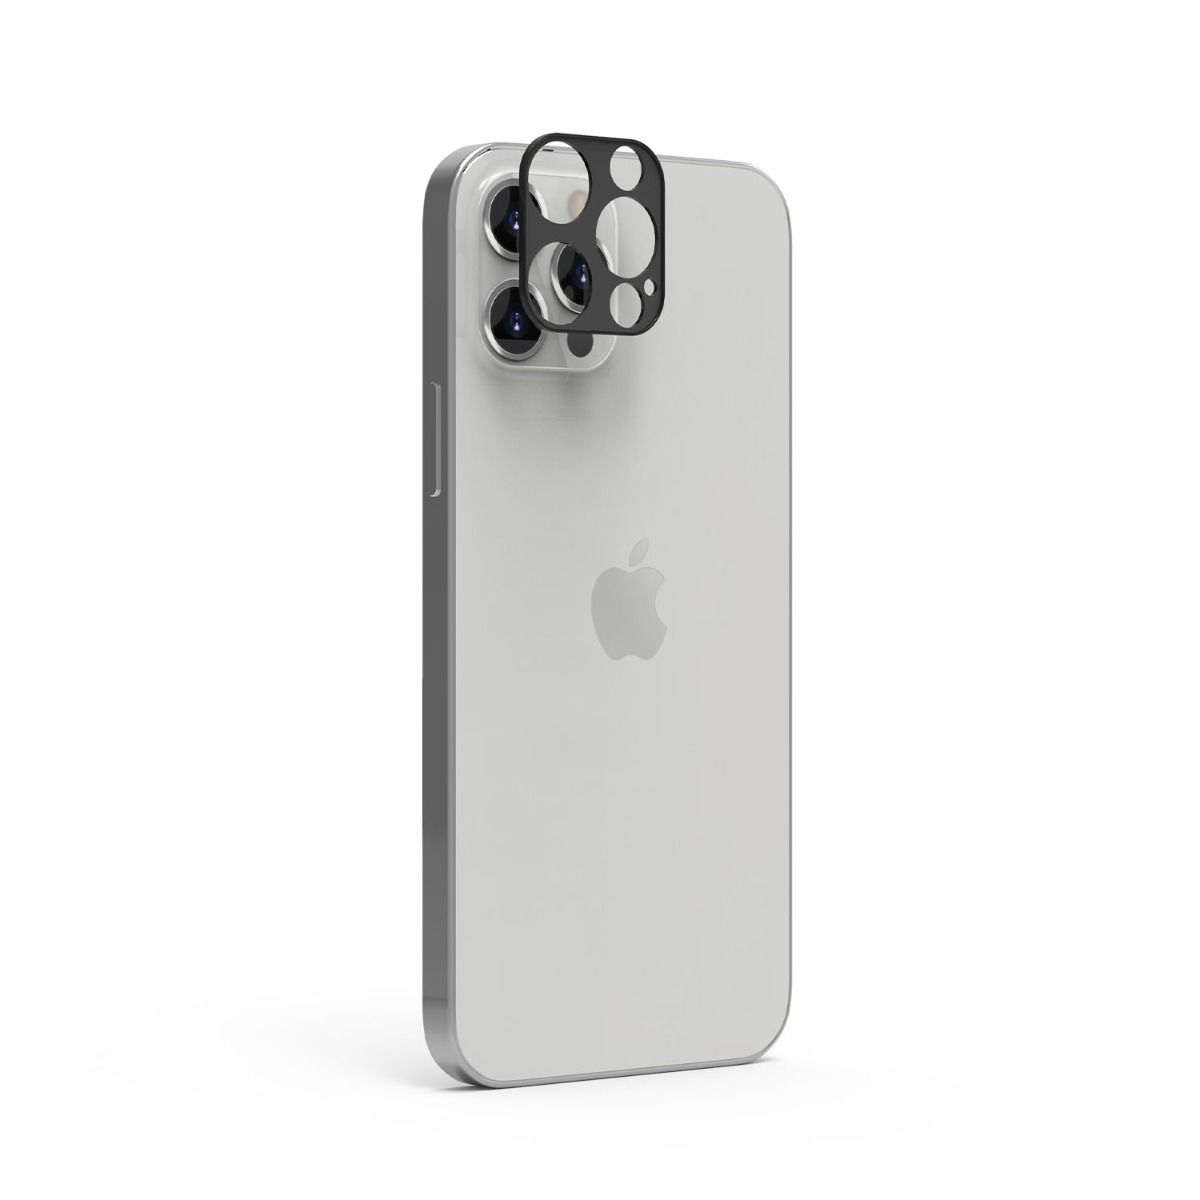 Apple iPhone 12 Pro Glass Camera Lens Protector (No Alignment Tray)